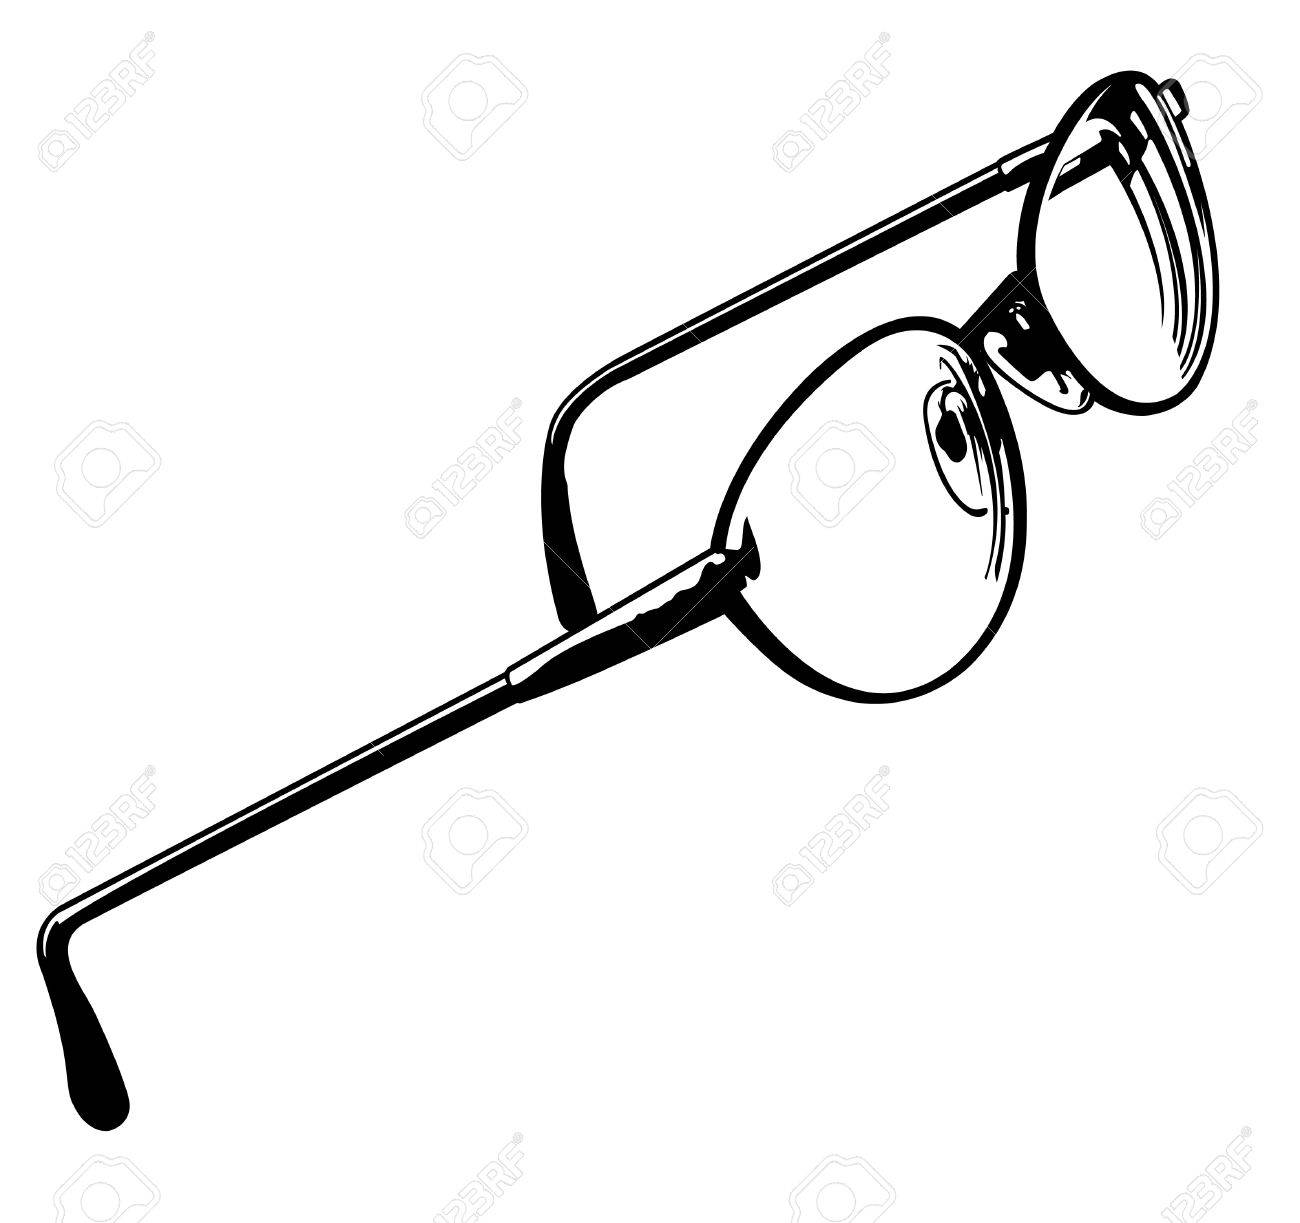 Black and white vector illustration of a pair of eye glasses. Stock Vector - 12091447